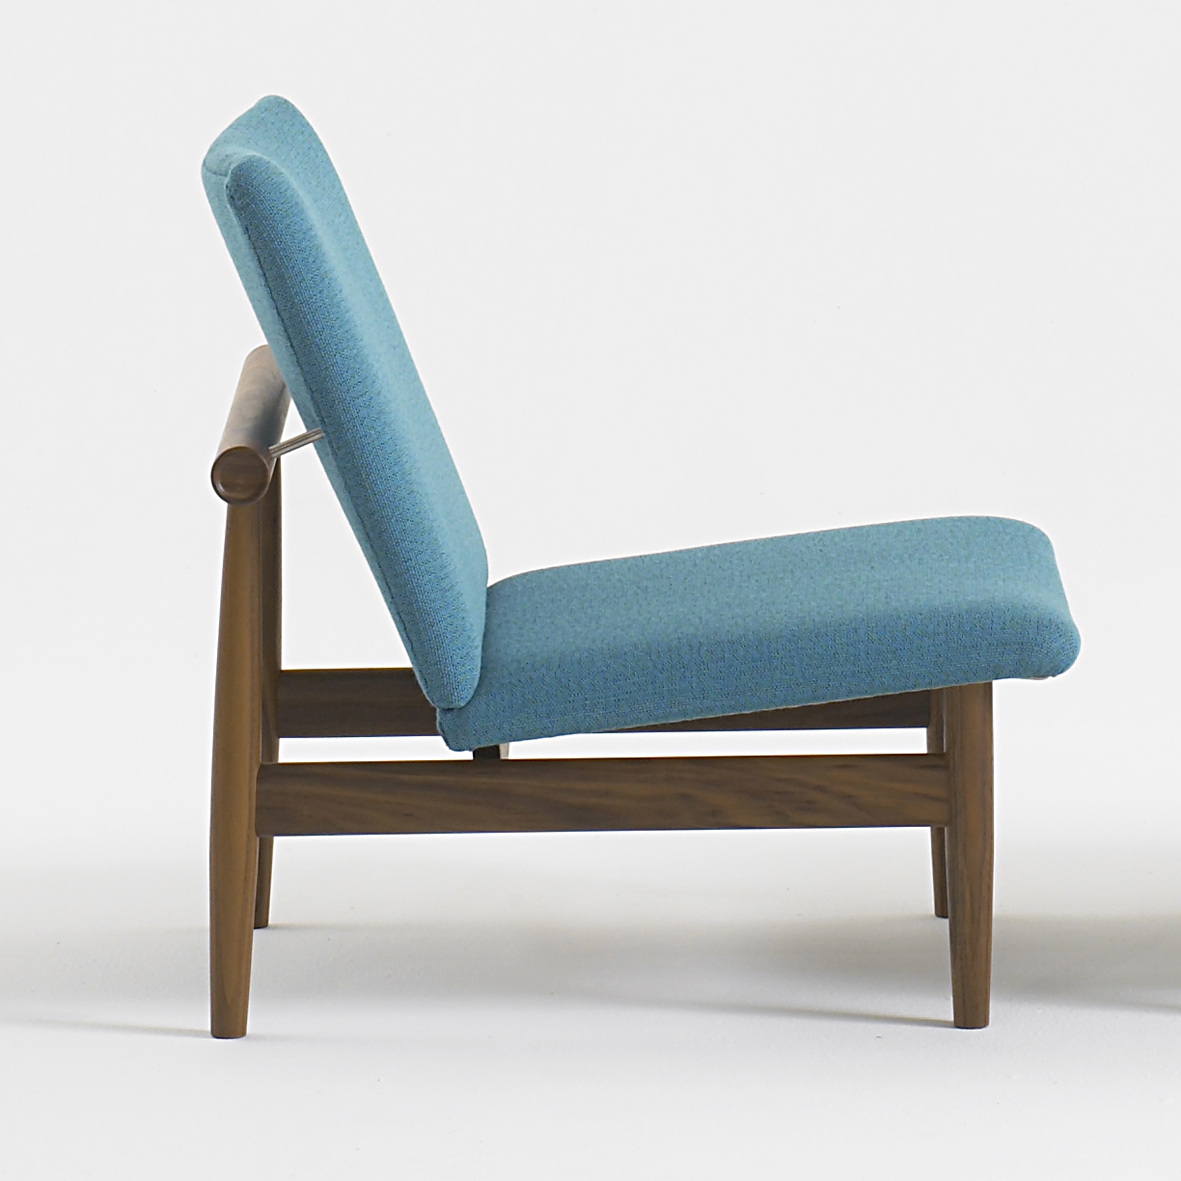 Japan chair. Finn Juhl